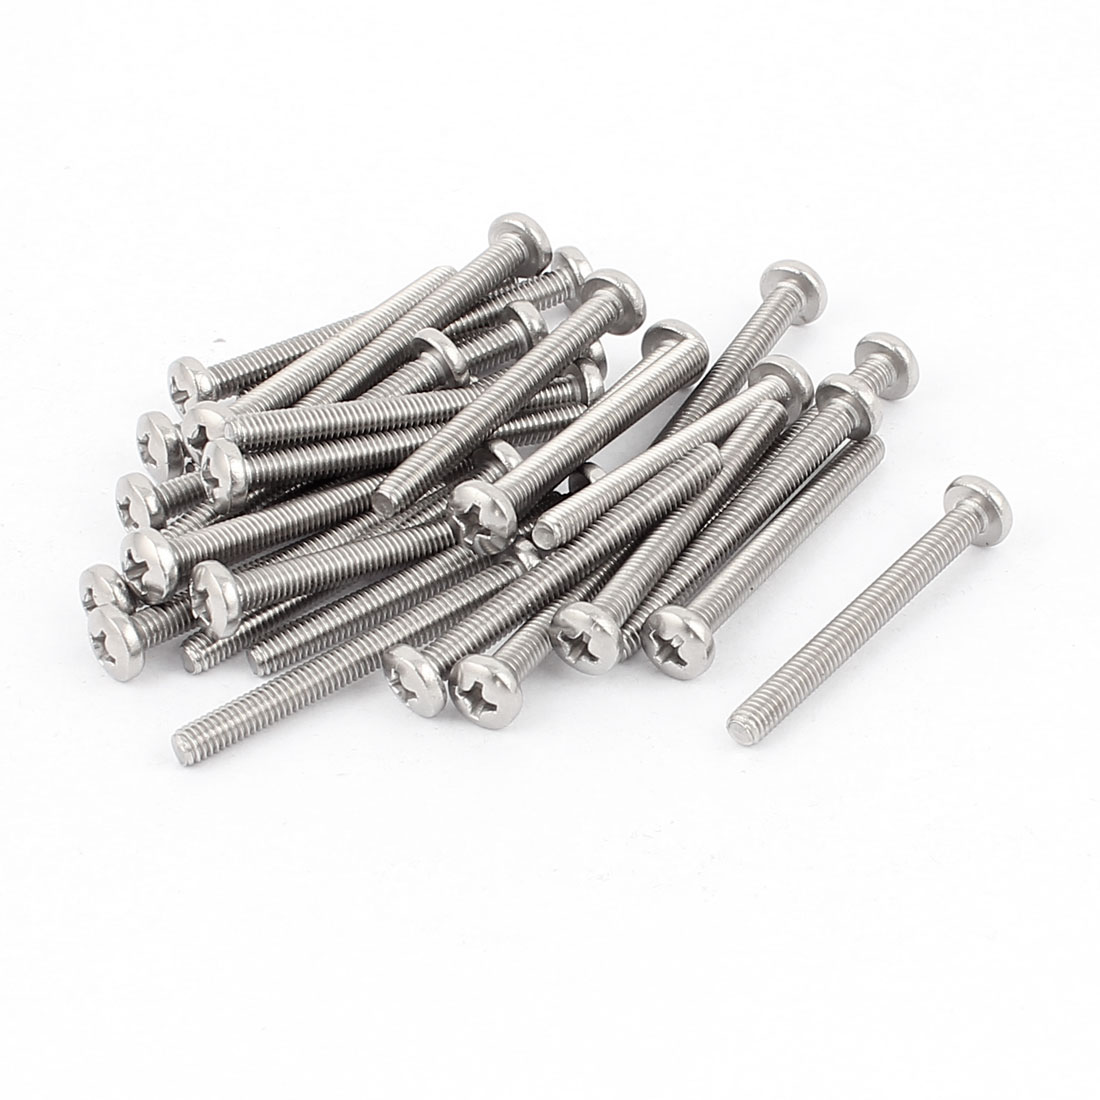 M4 x 40mm Thread Phillips Head Screws 30pcs for Cabinet Drawer Handles